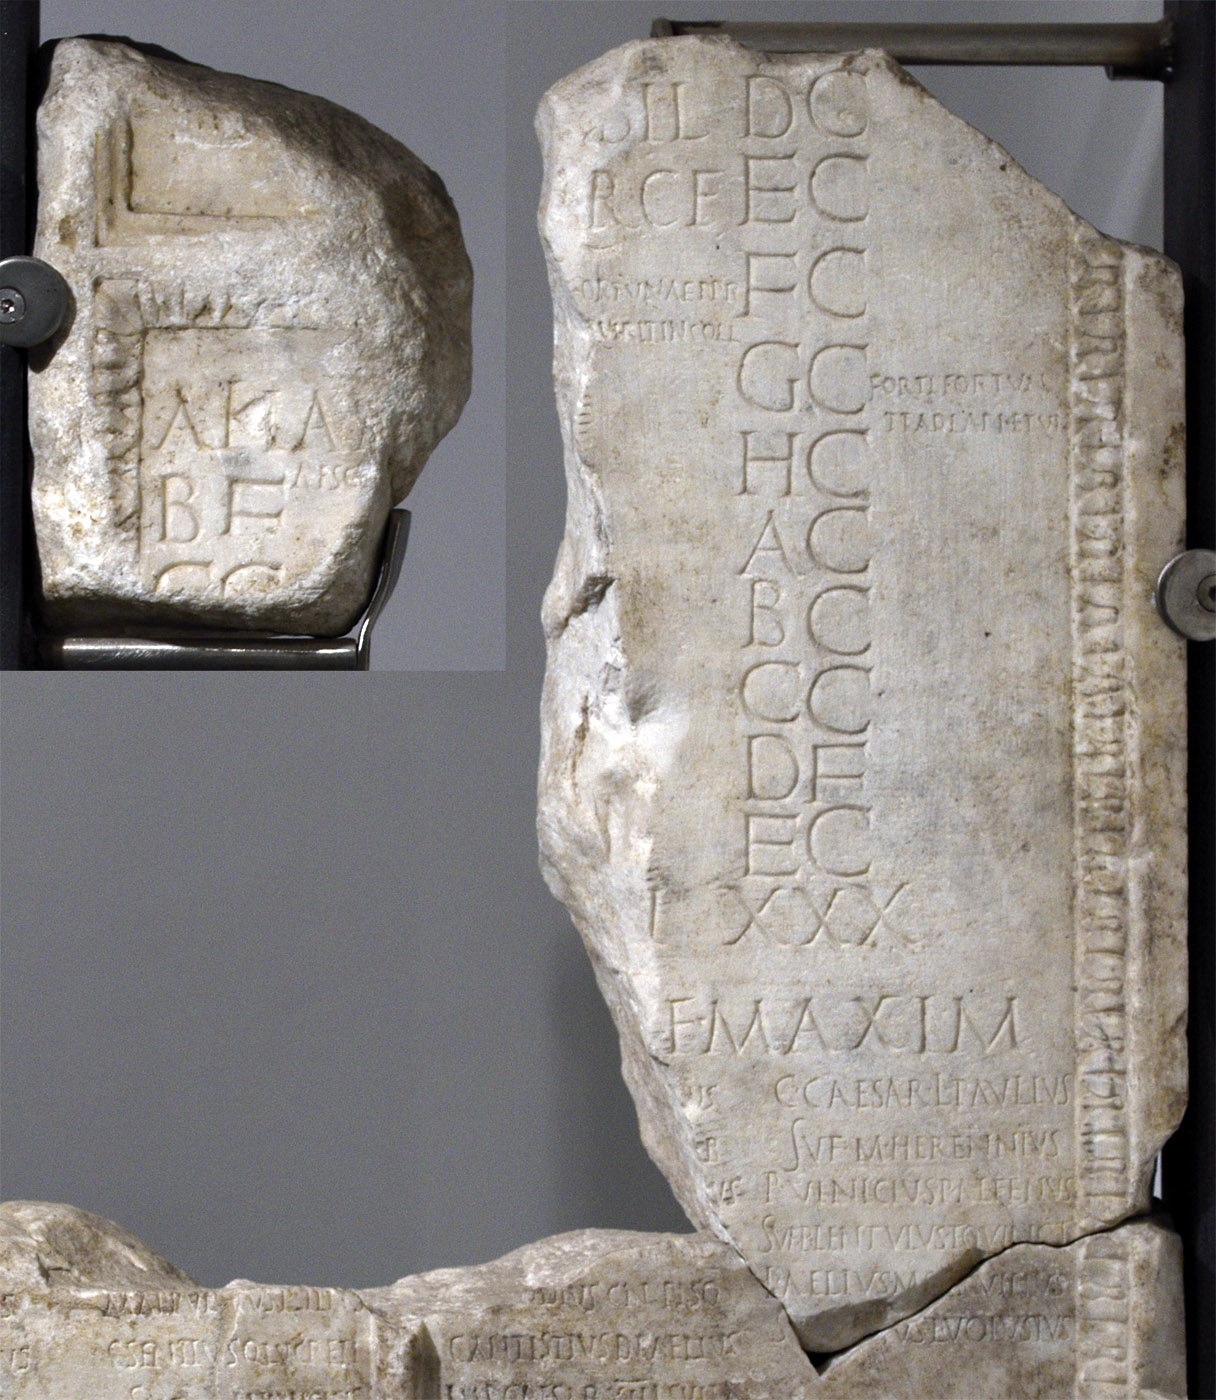 Fasti of vicomagistri. Calendar. CIL. VI. 10286; 10287 = InscrIt. XIII. 1. 20; XIII. 2. 12. Marble. 3 CE. Hall 5, Inv. No. 121558. Rome, Roman National Museum, Baths of Diocletian